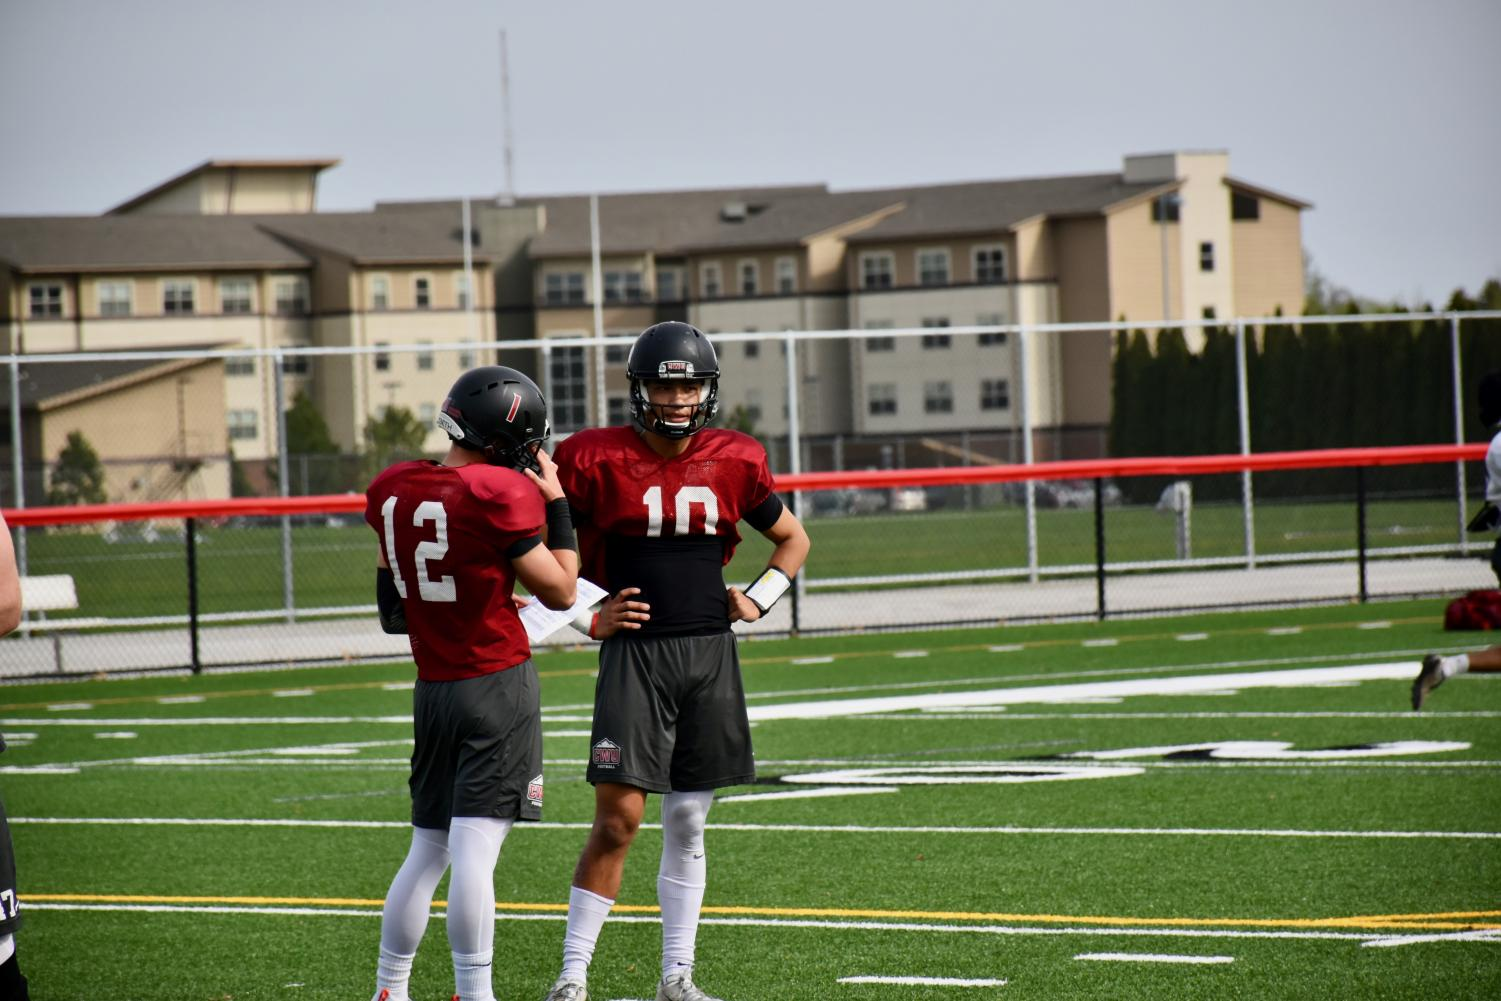 Canon Racanelli, Tai-John Mizutani and Christian Moore are competing for the starting quarterback position for next fall.